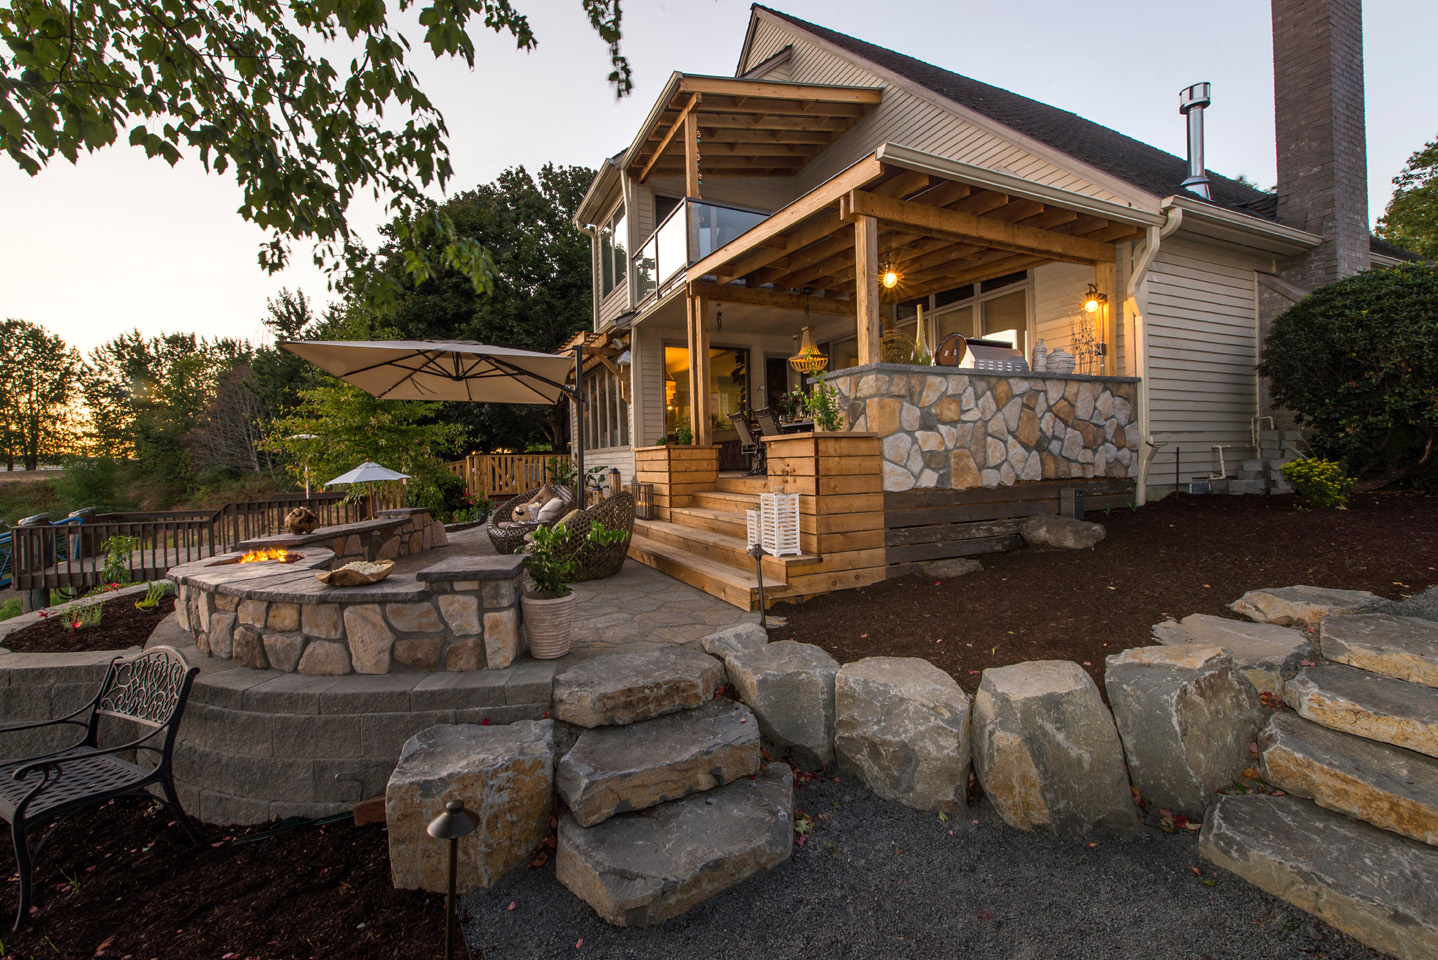 Lean-to Style structure in Outdoor Space